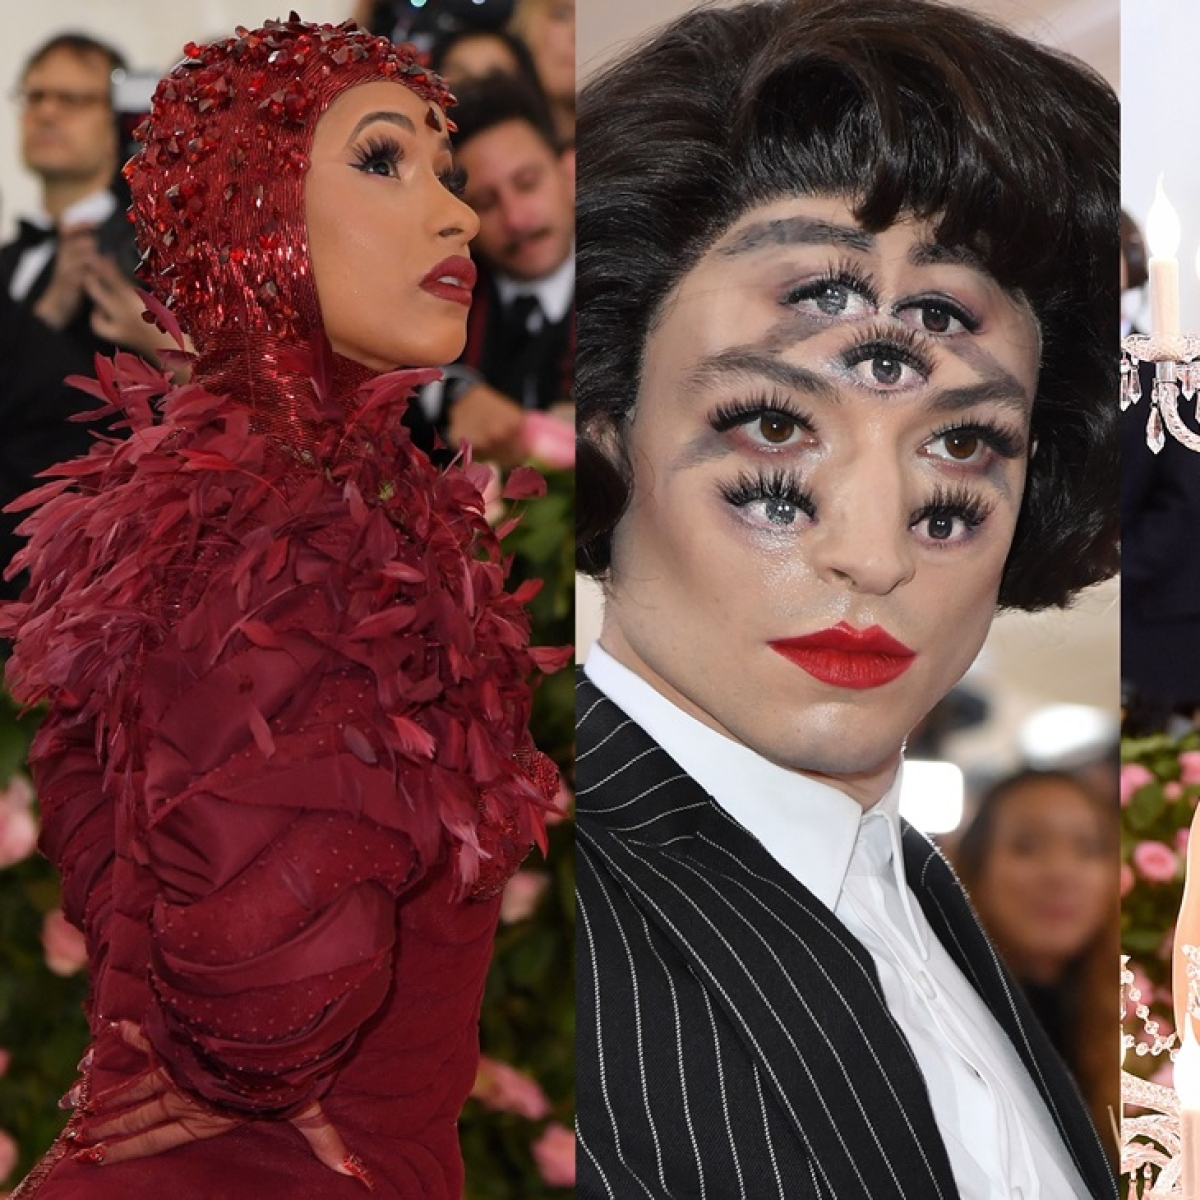 COVID-19 Impact: Met Gala 2020 officially cancelled